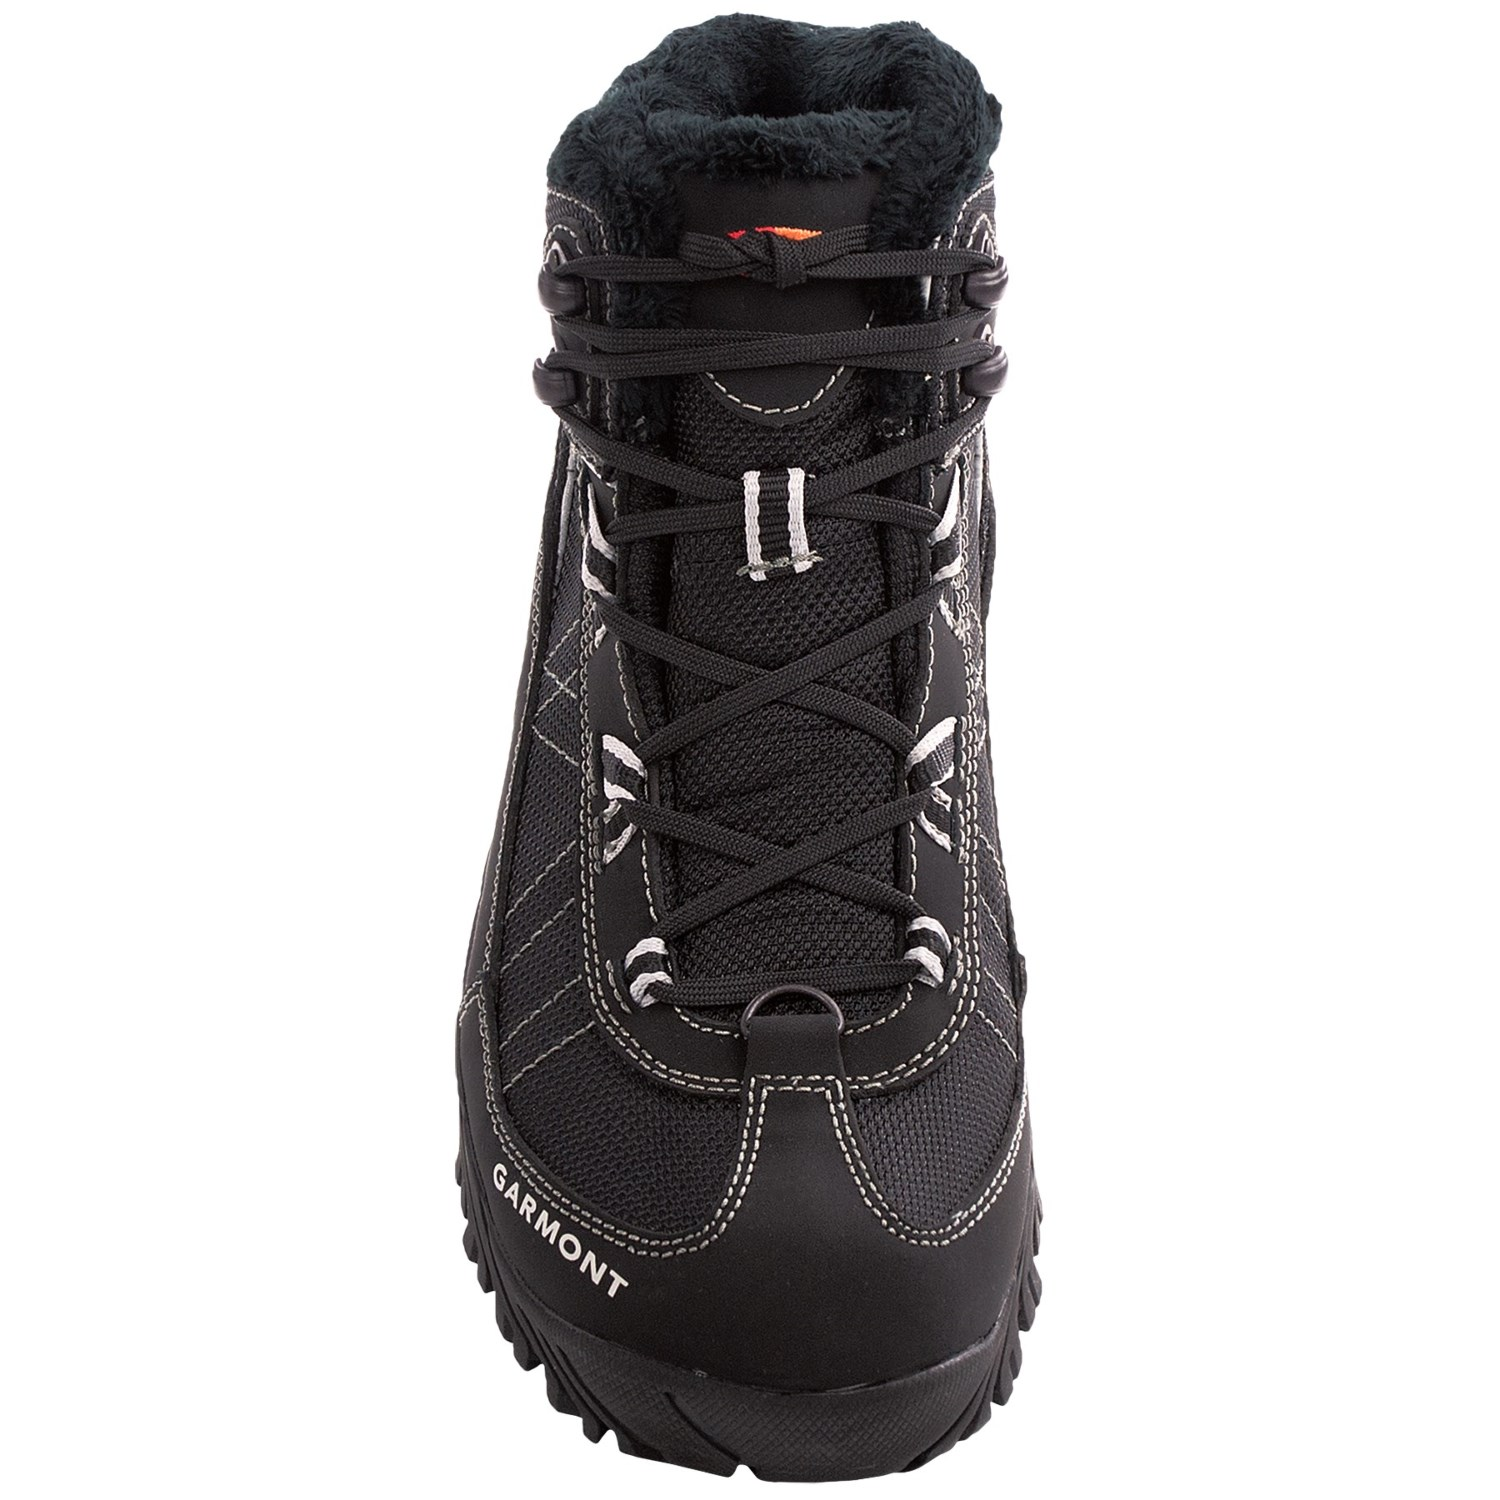 Garmont Momentum Mid Snow Gore Tex 174 Hiking Boots For Men